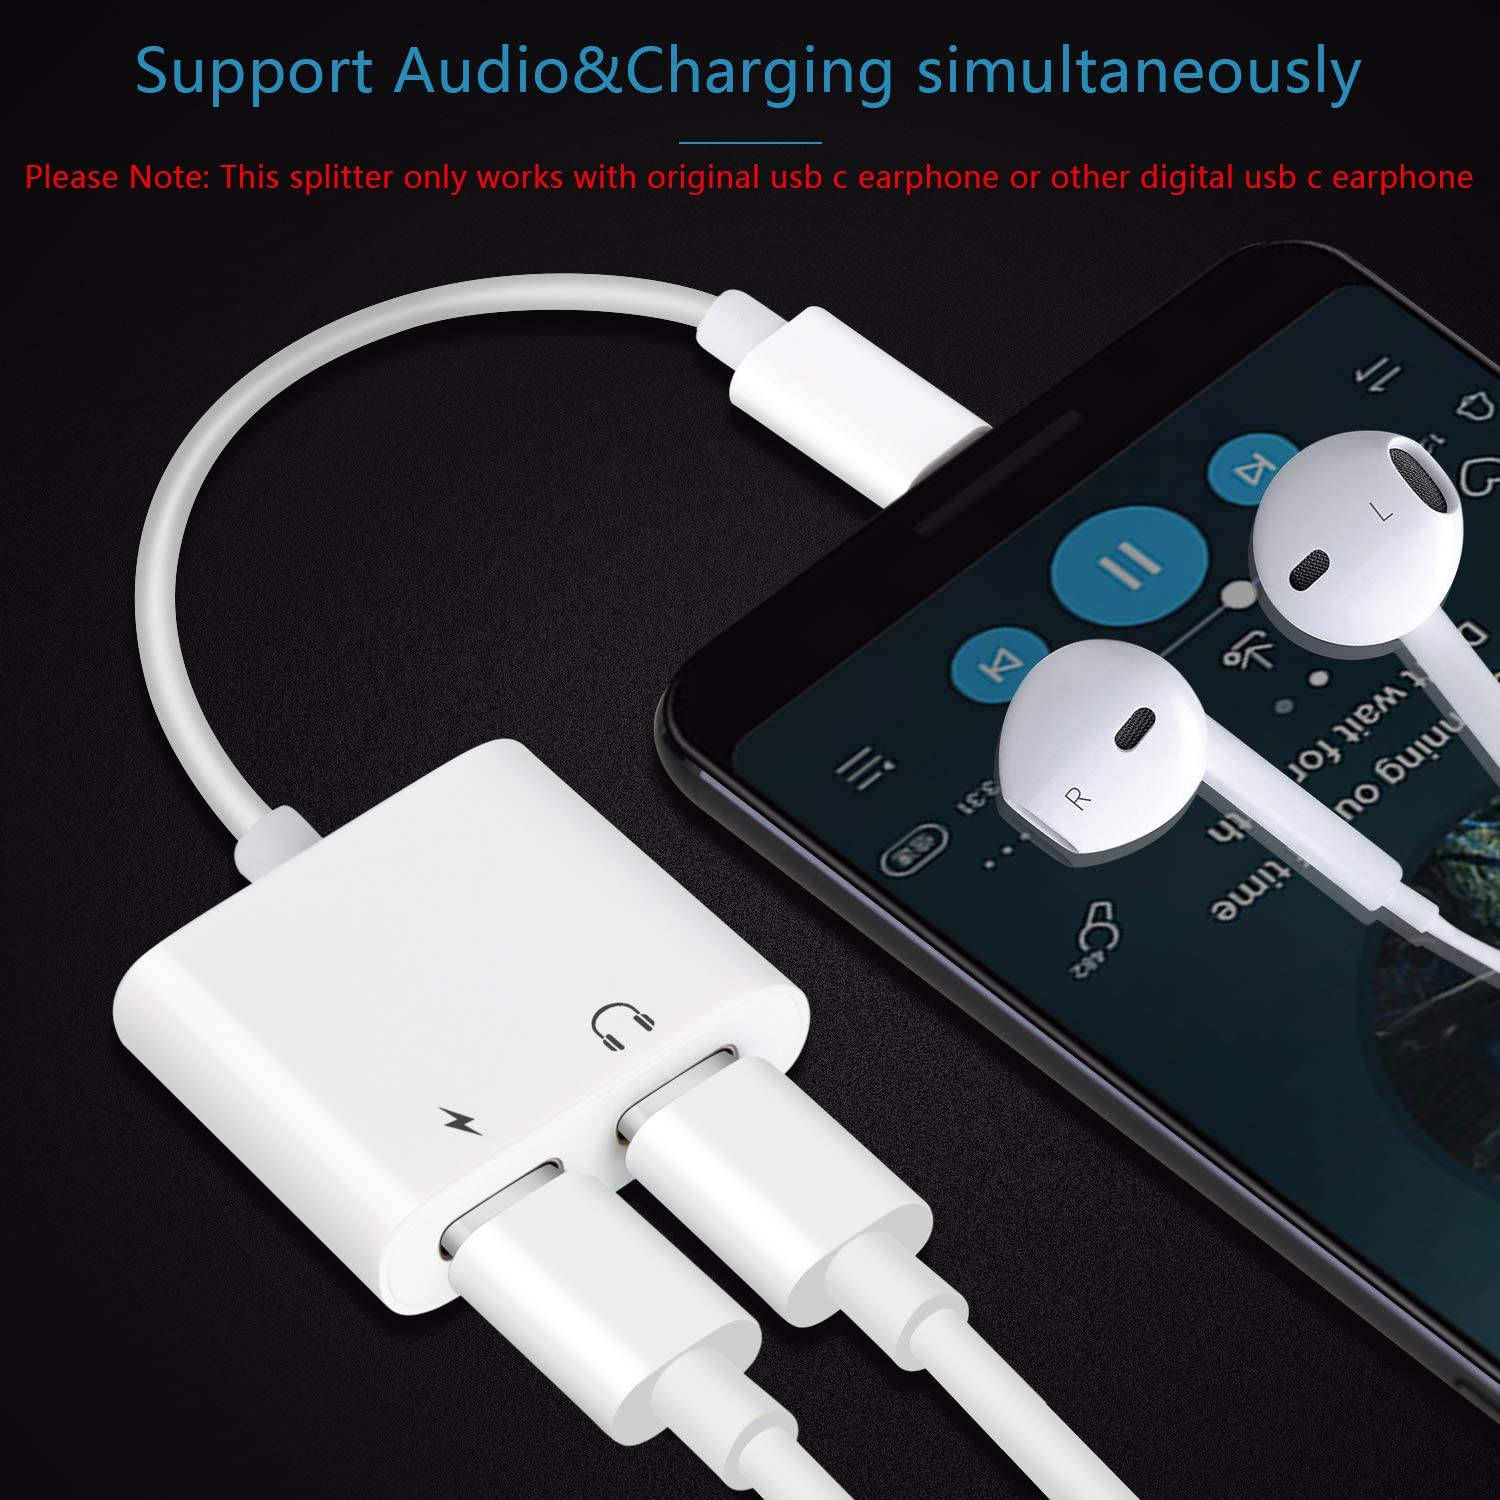 Mxcudu 2 in 1 USB C Male to USB C Audio/&Charging Converter Adapter and USB C Earphone Dongle Compatible with Google Pixel 4//3XL USB C Headphone Jack Adapter Galaxy Note 10//10+ and More White